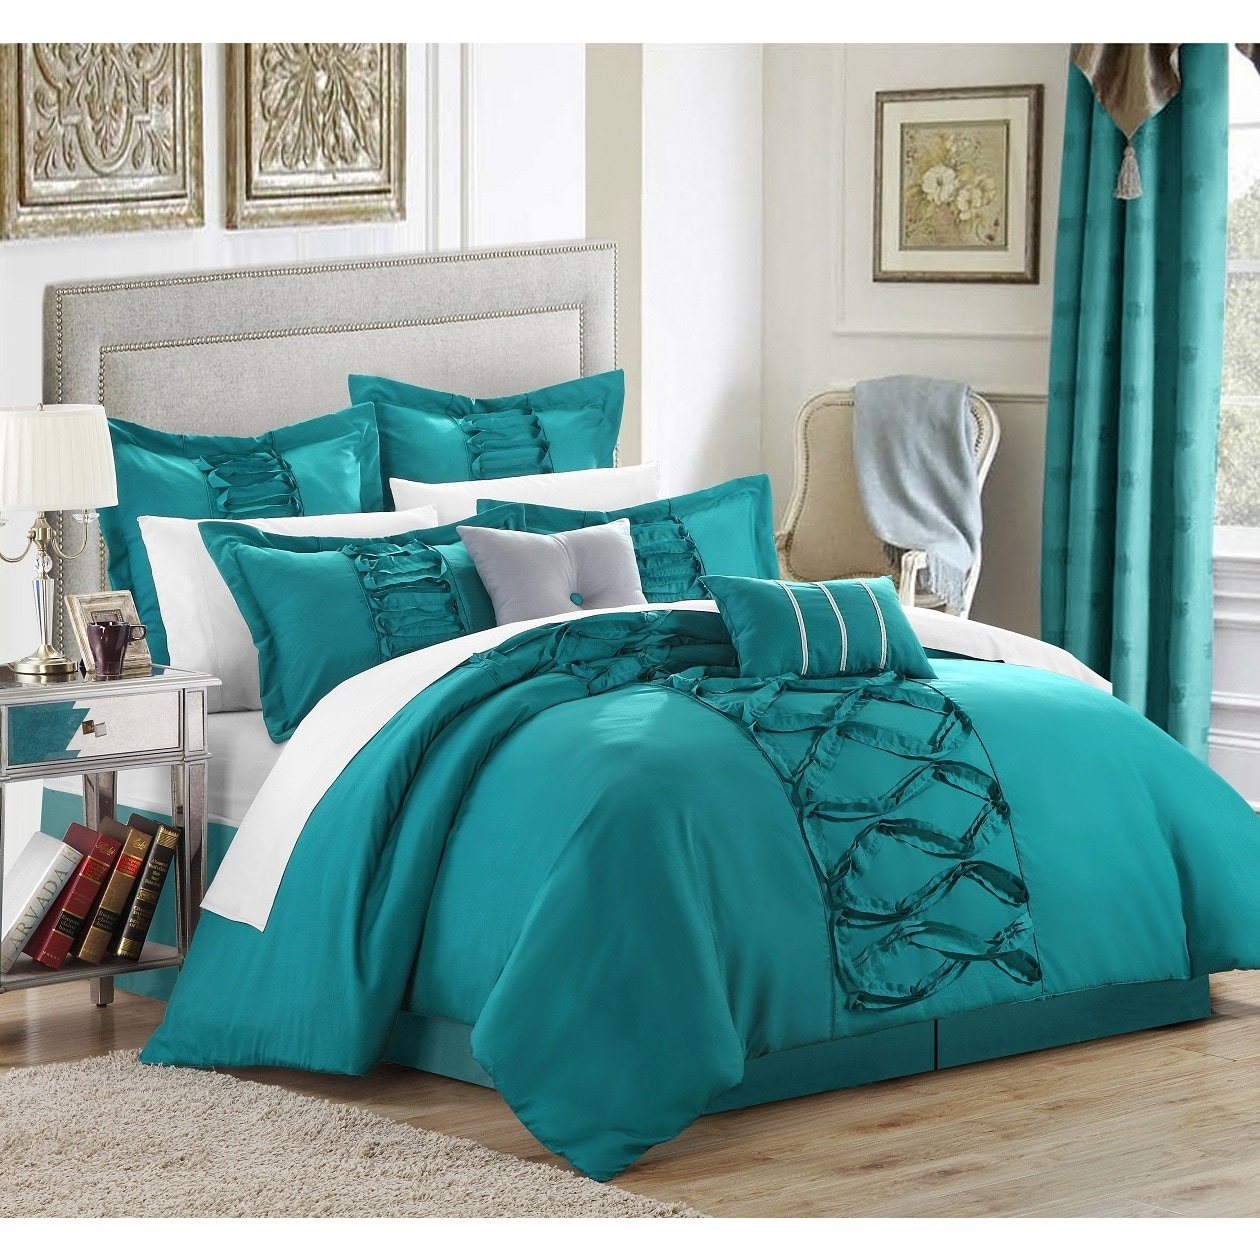 Oliver & James Marlene Turquoise 12-piece Bed in a Bag with Sheet Set